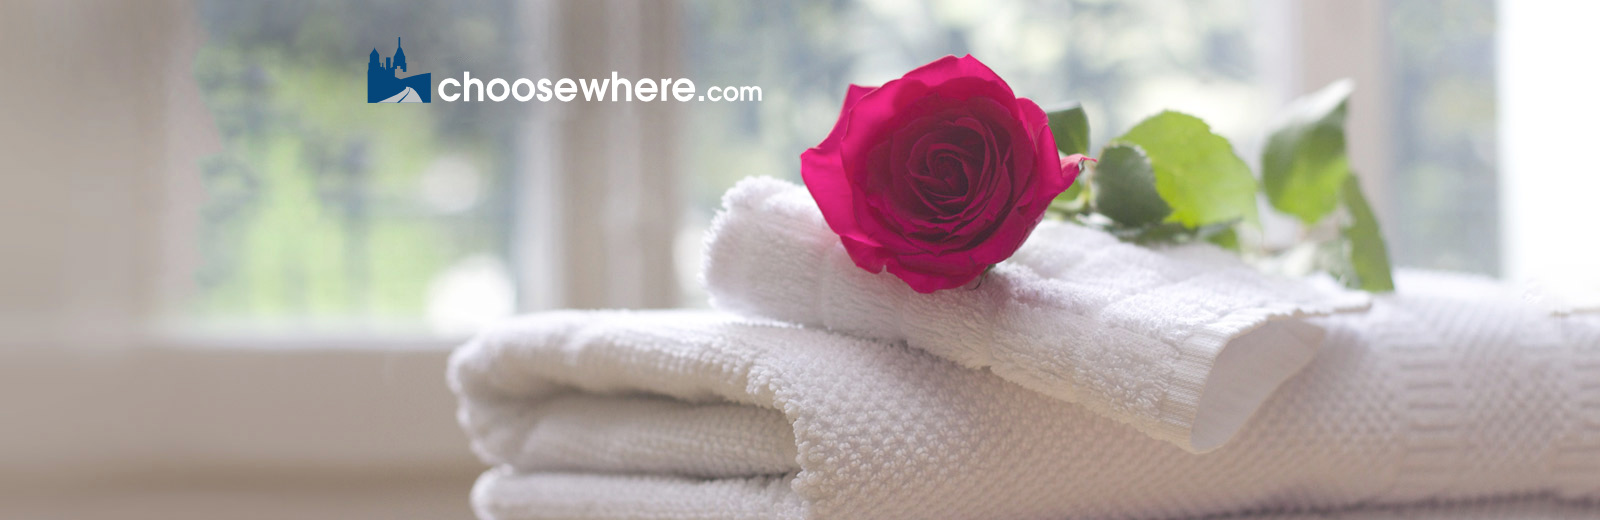 A single red rose sitting on top of a pile of white towels